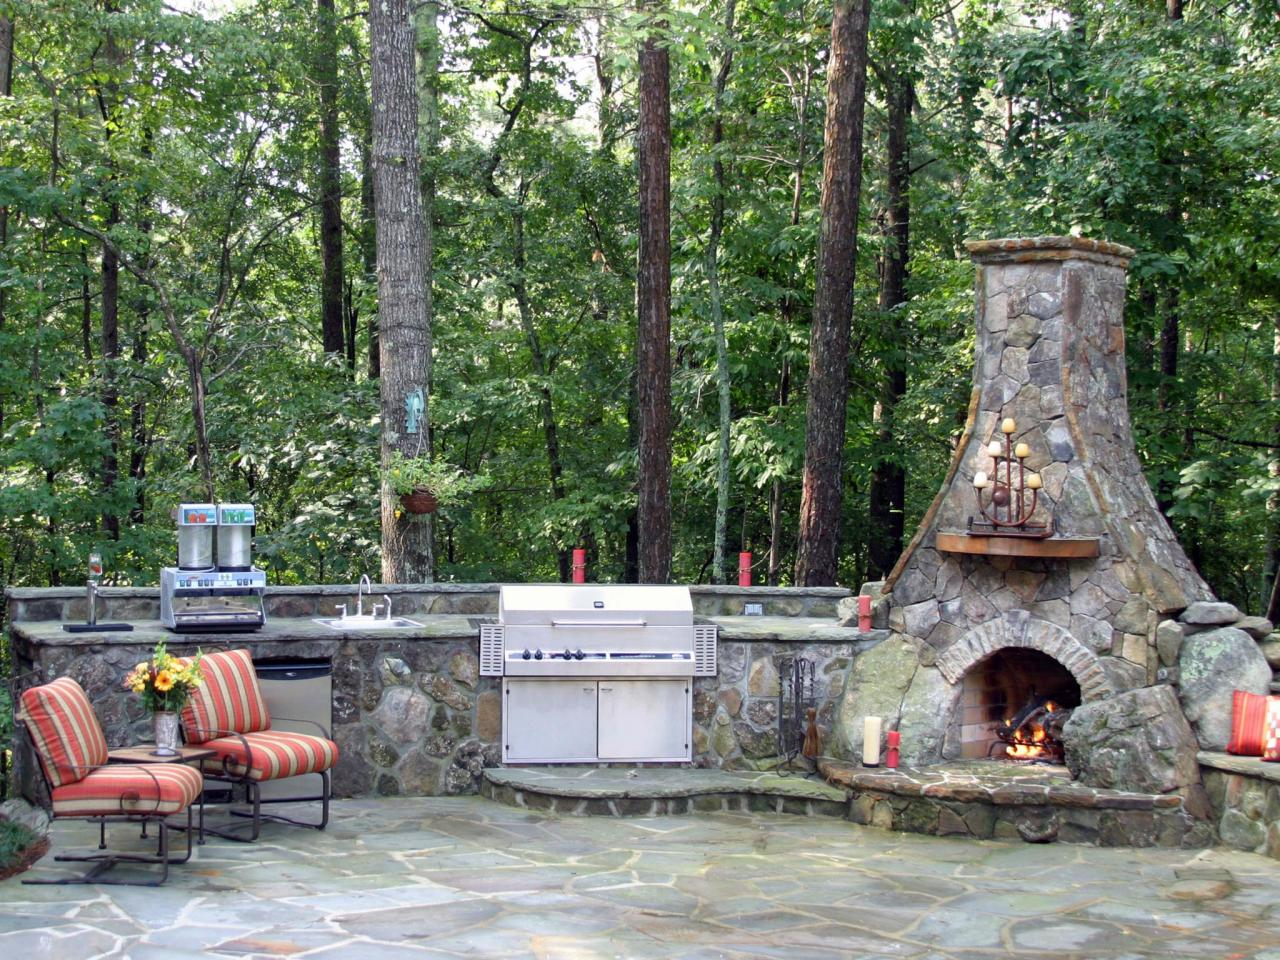 Options For An Affordable Outdoor Kitchen DIY - Outdoor kitchen designs with smoker